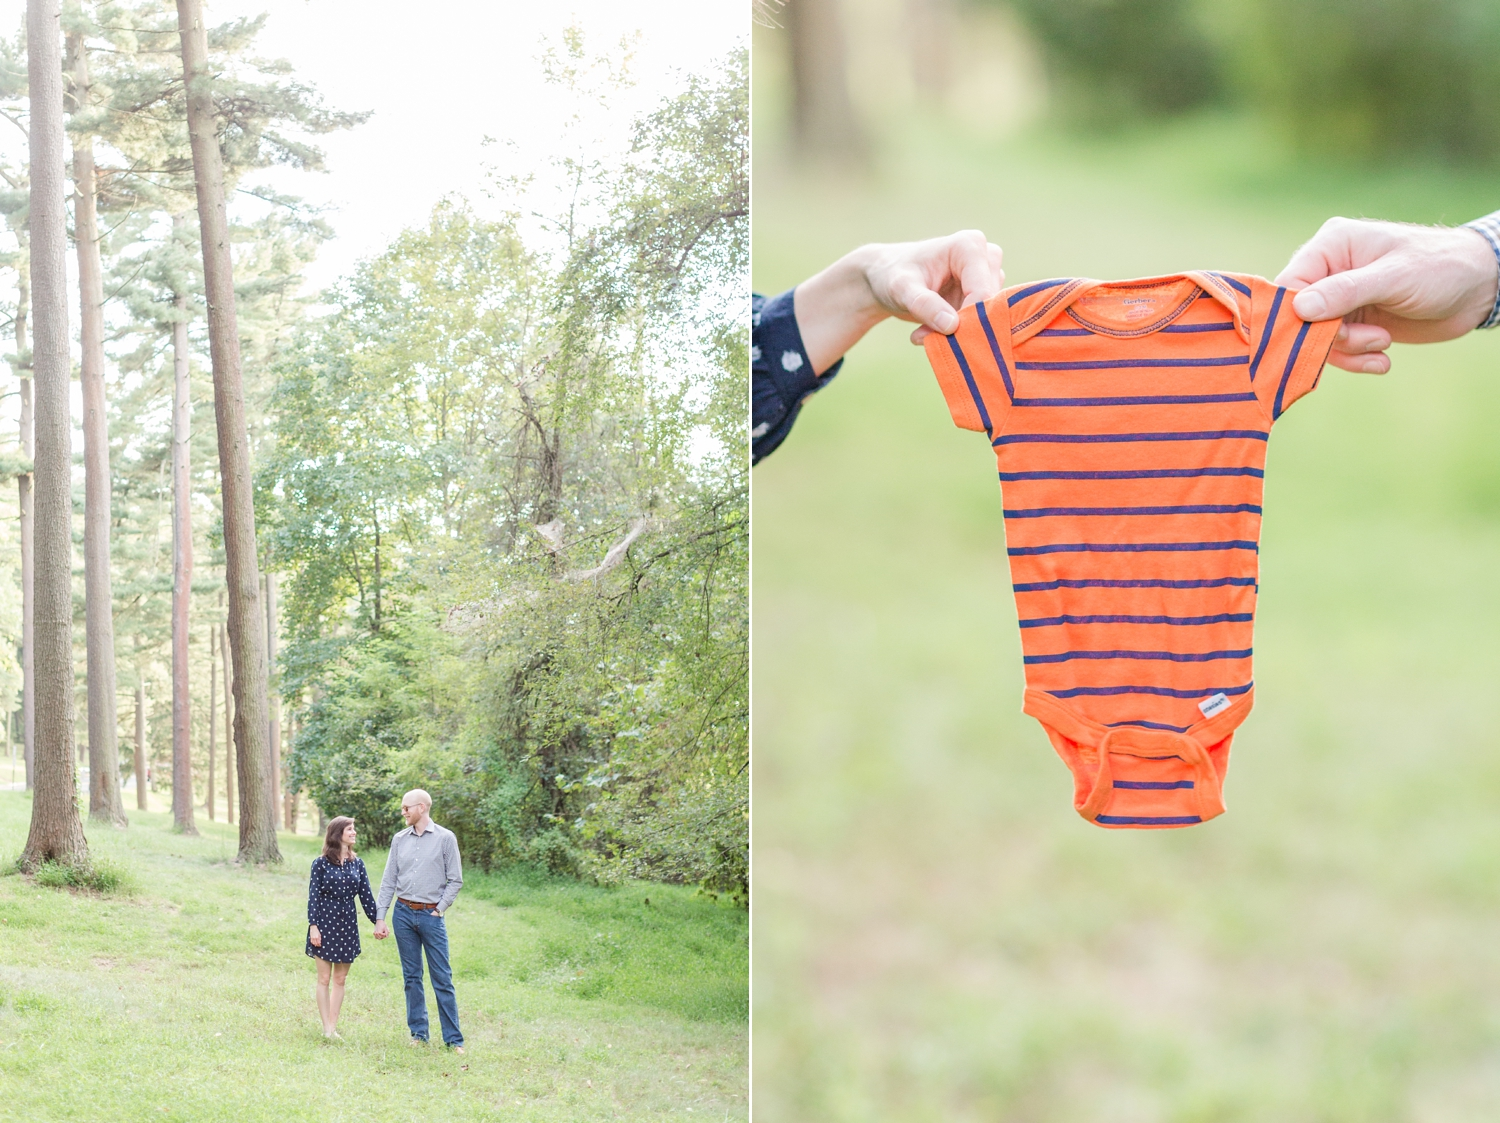 Bird Family 2018-51_Loch-Raven-Reservoir-Anniversary-Pregnancy-Reveal-Photographer-anna-grace-photography-photo.jpg